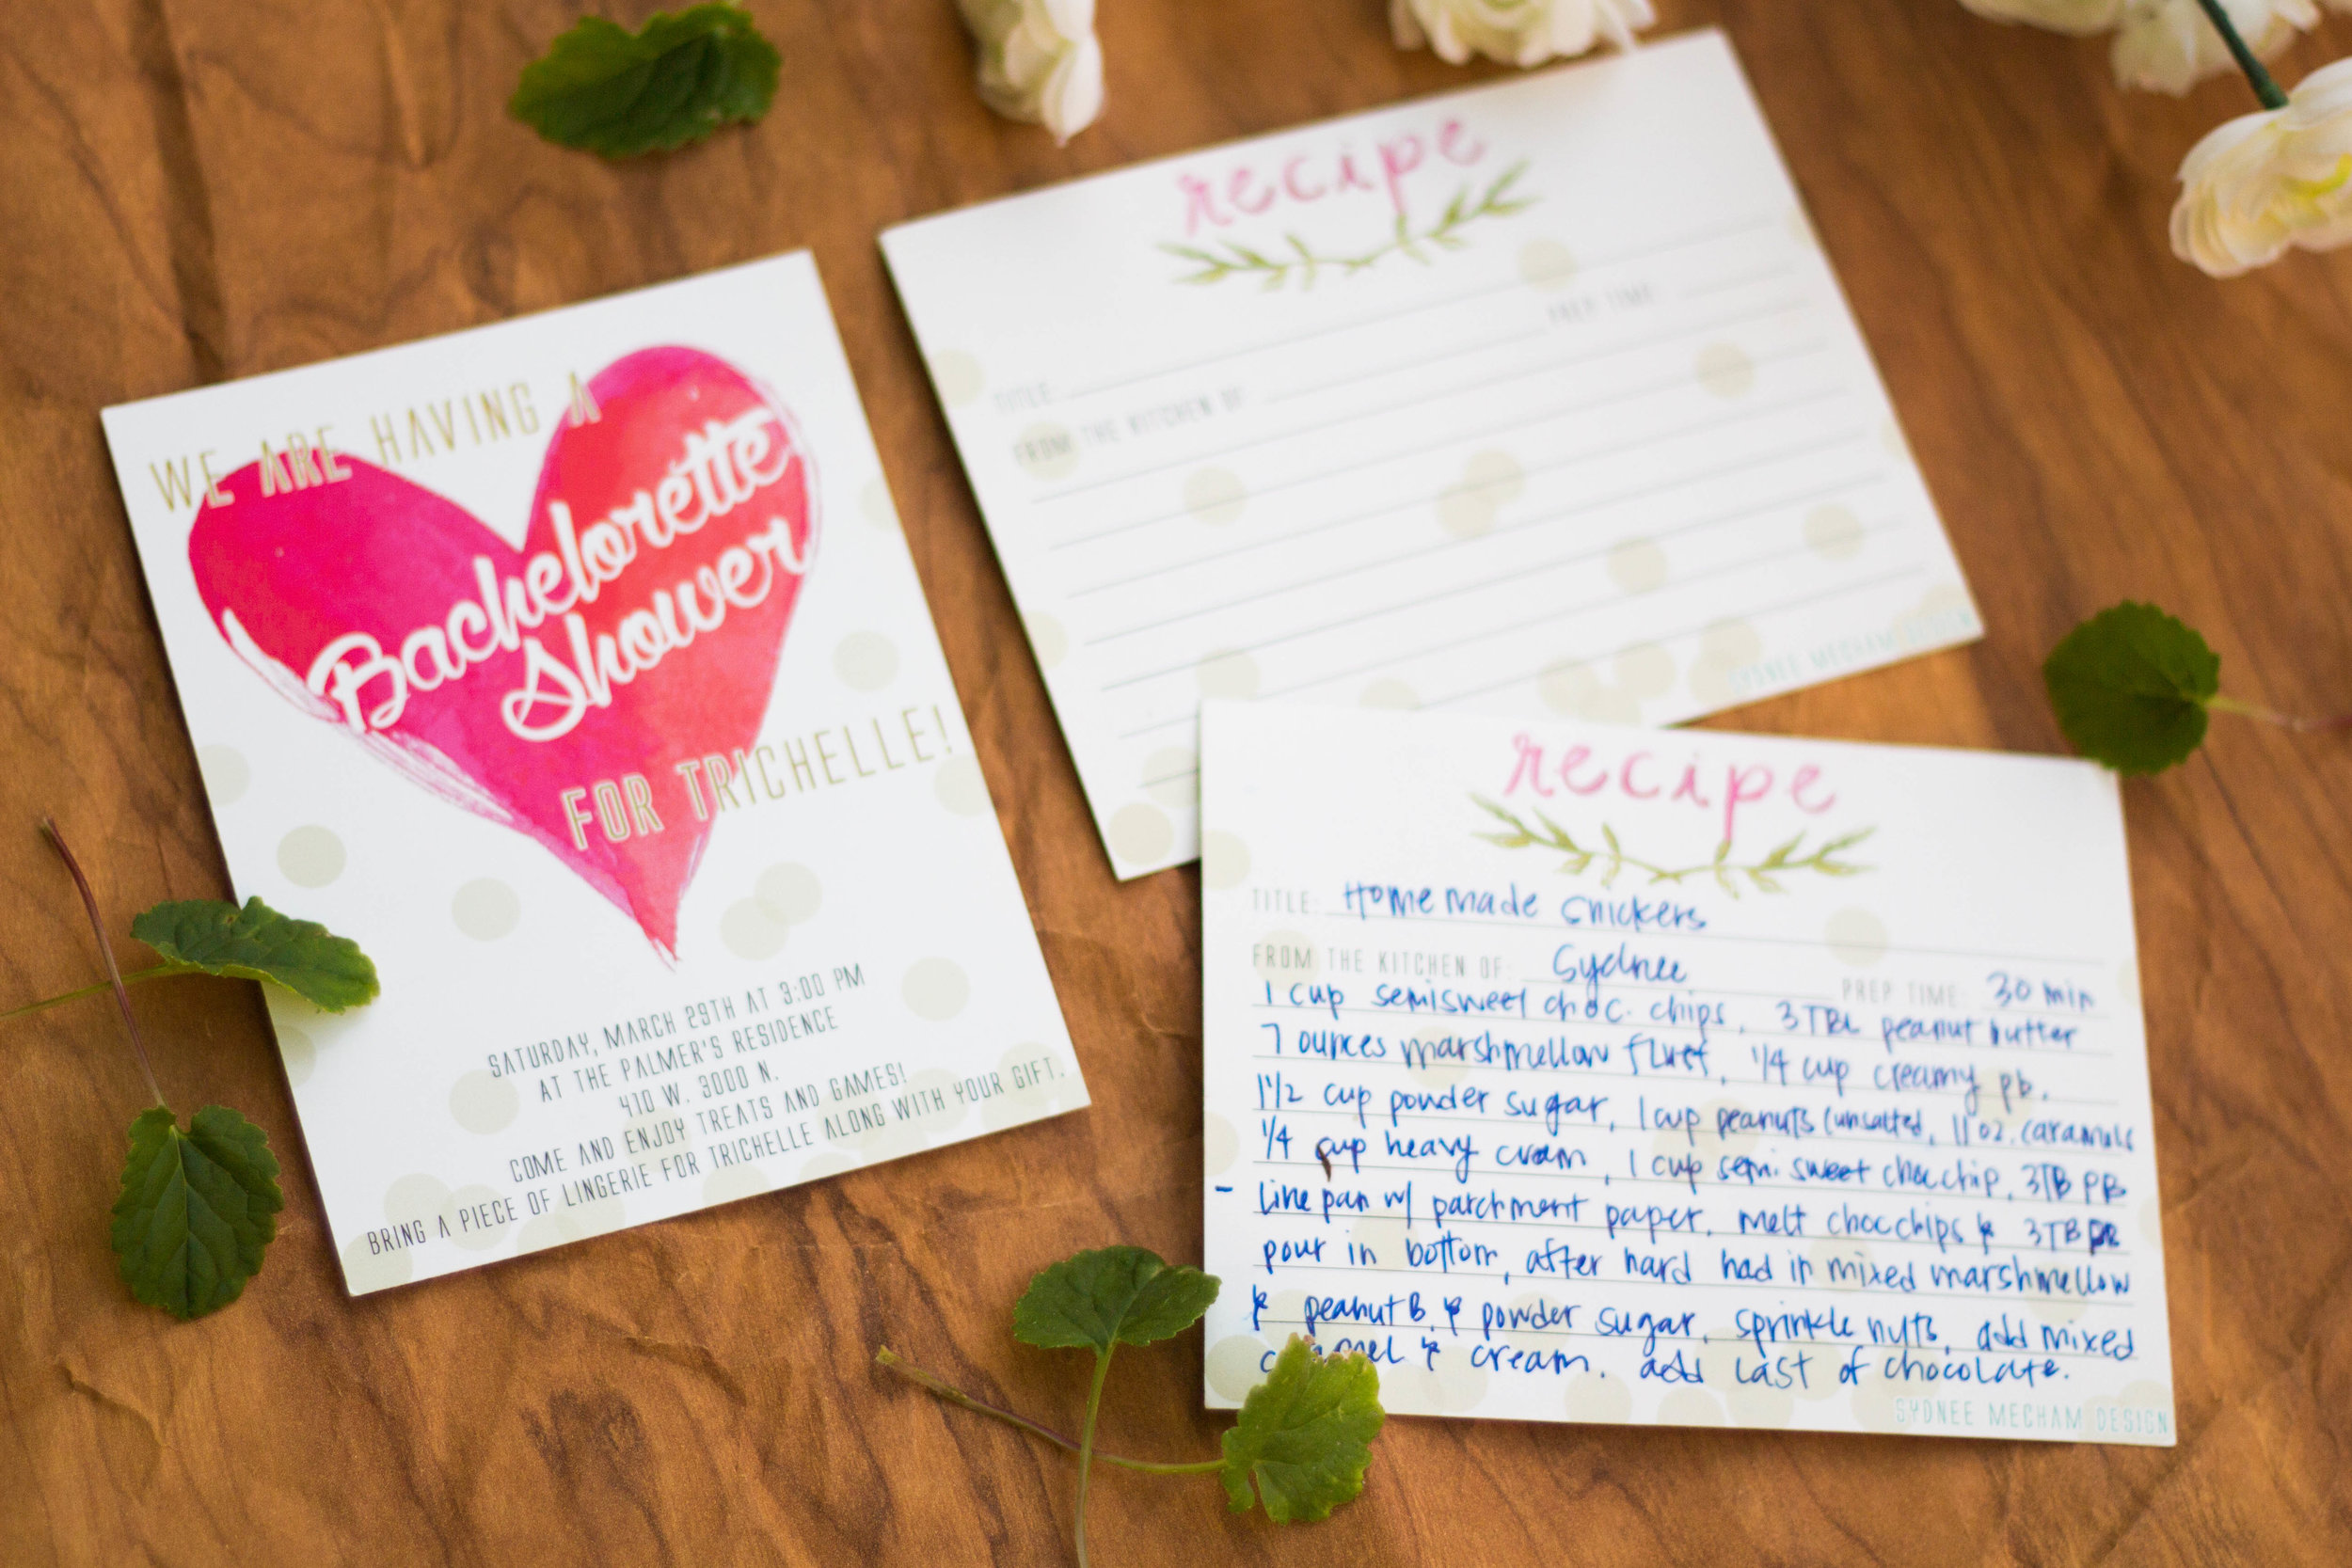 Bridal Shower Invitations   Invitations are my favorite especially when I get to do Bridal Shower invitations! This design features a recipe card on the back that quests can bring back with their favorite recipe